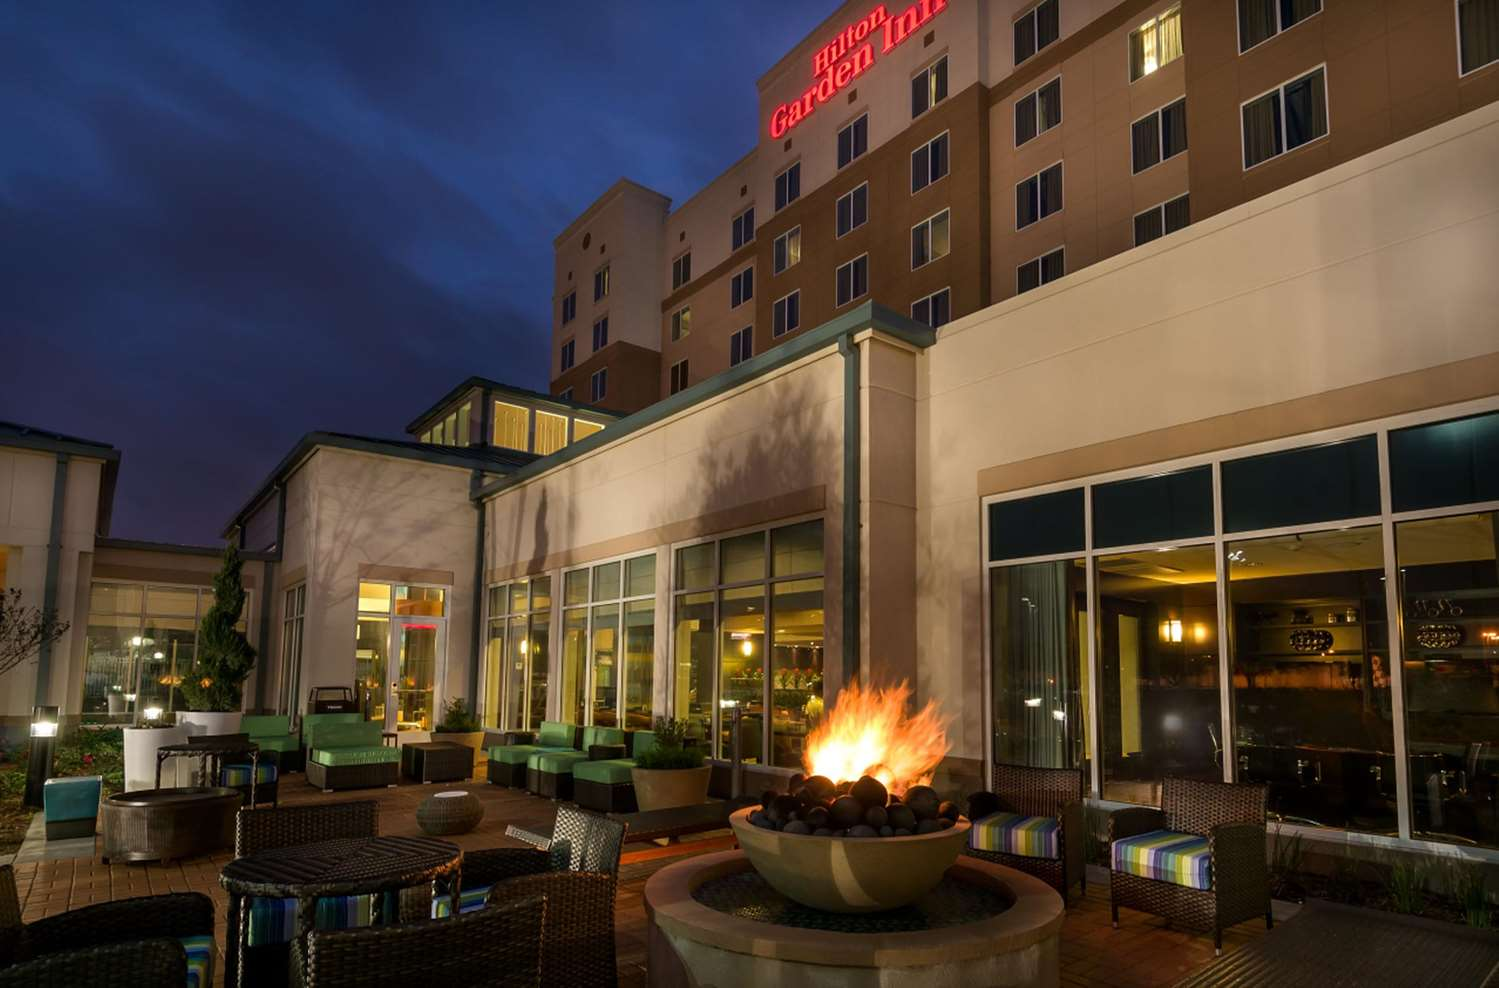 Meetings And Events At Hilton Garden Inn Houston Nw America Plaza